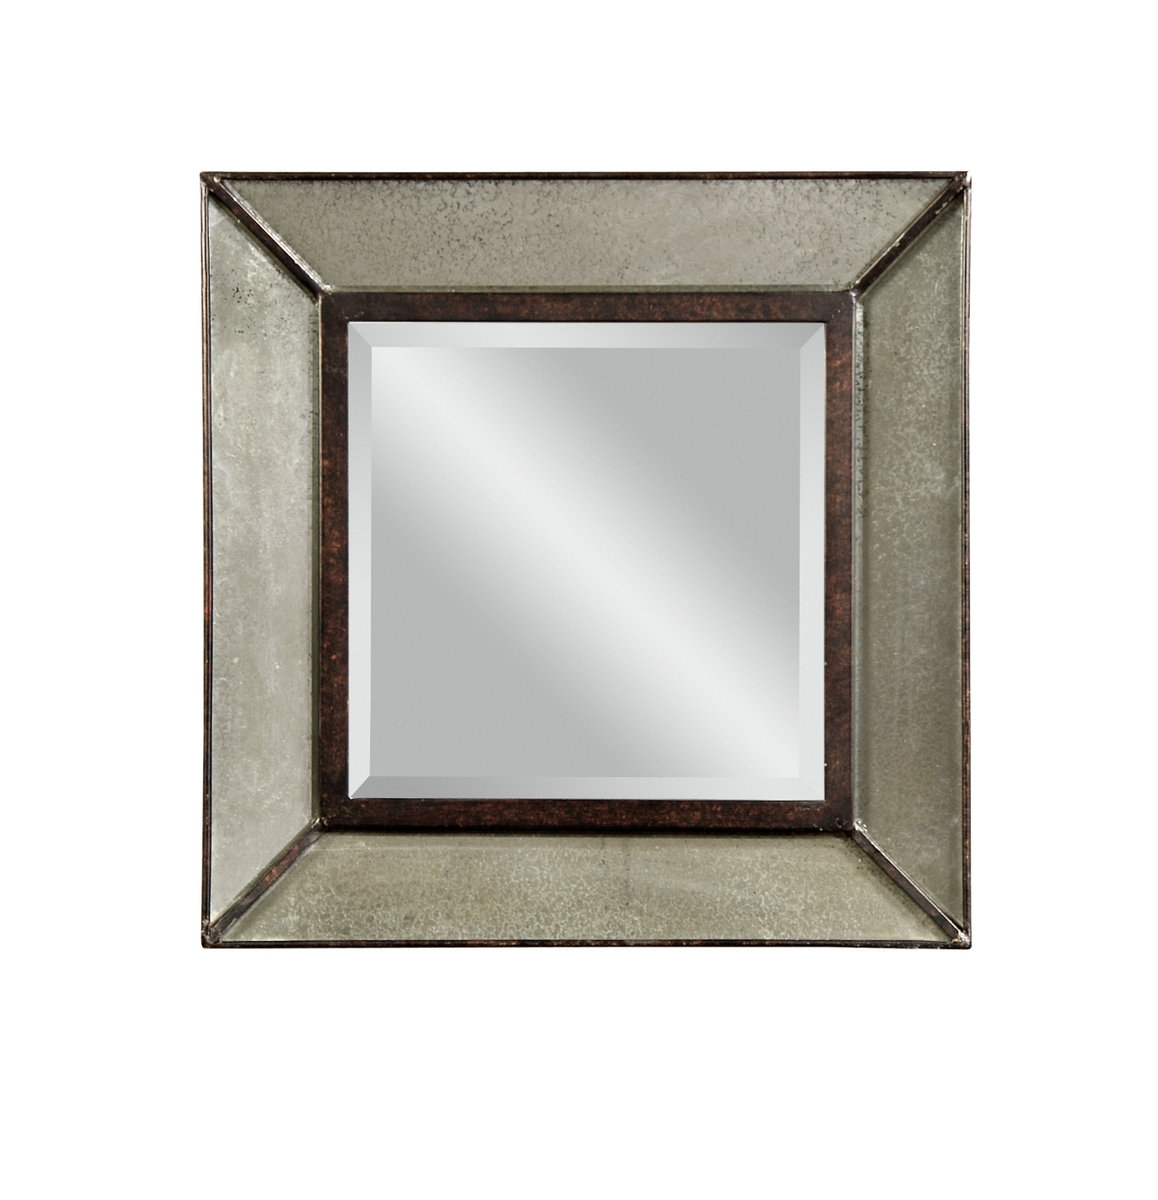 Edinborough Wall Mirror Antique Mirror Finish M3301bec Regarding Antiqued Wall Mirror (Image 6 of 15)